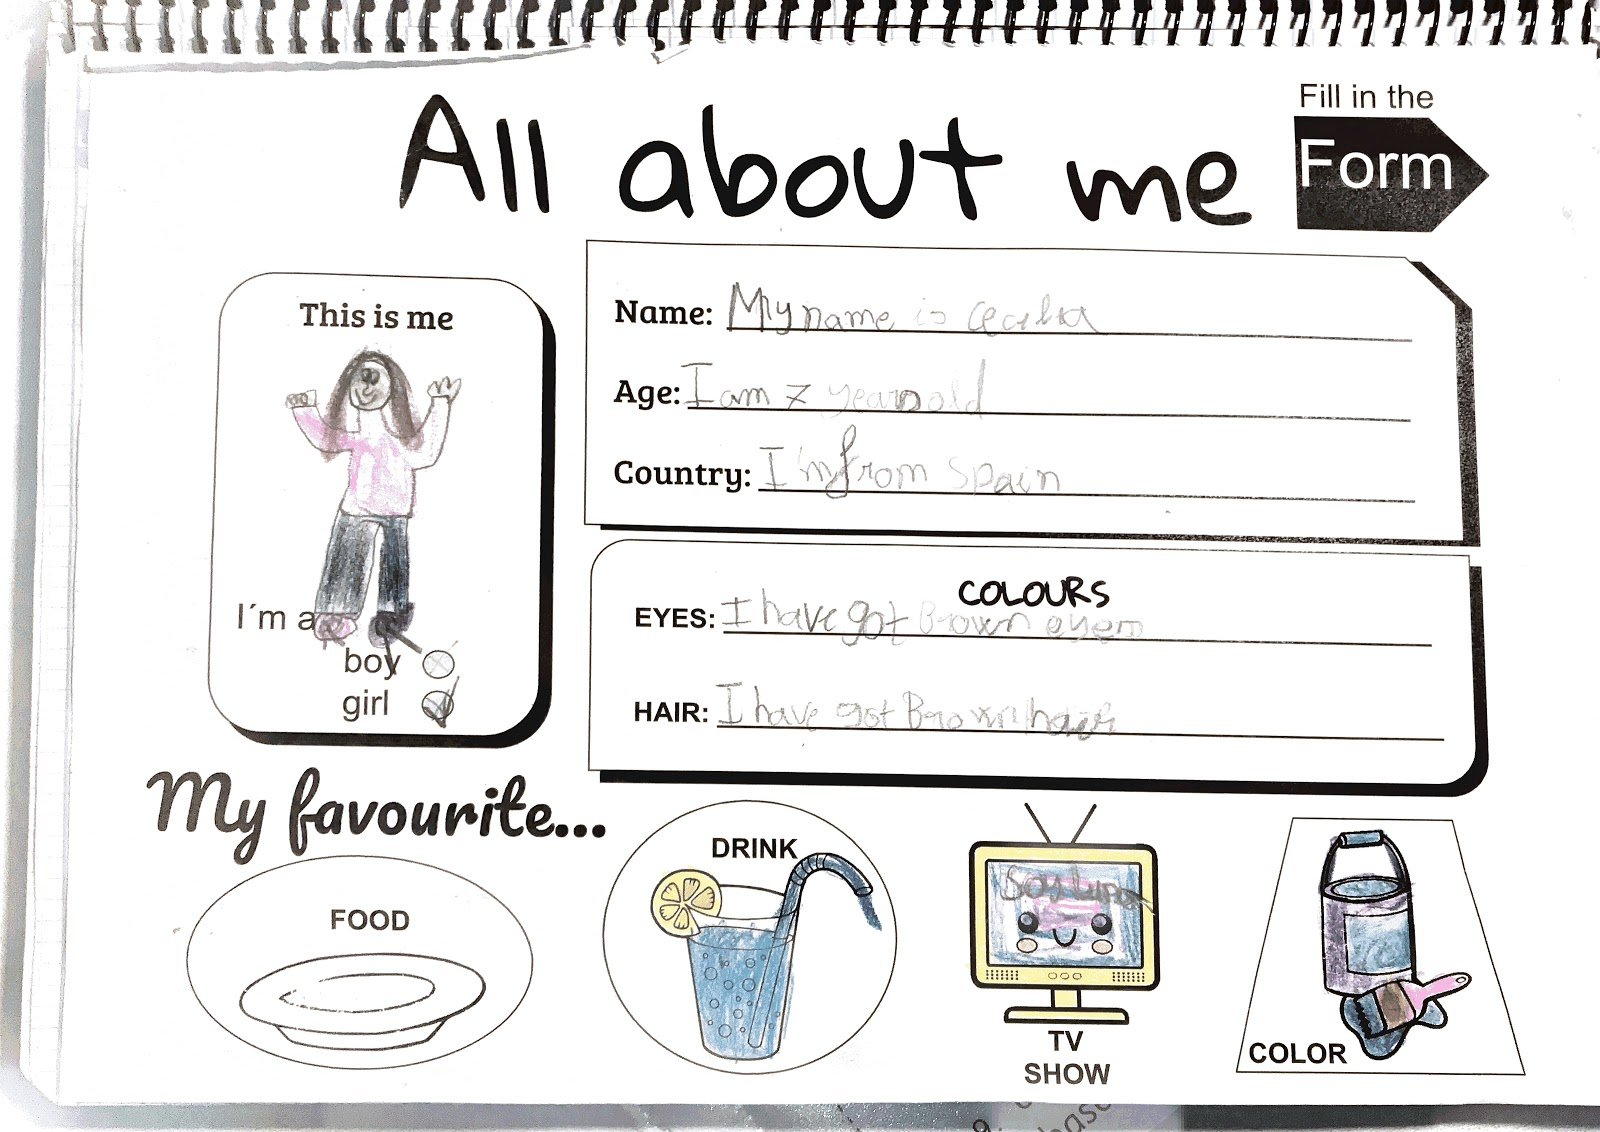 All about me Presentations